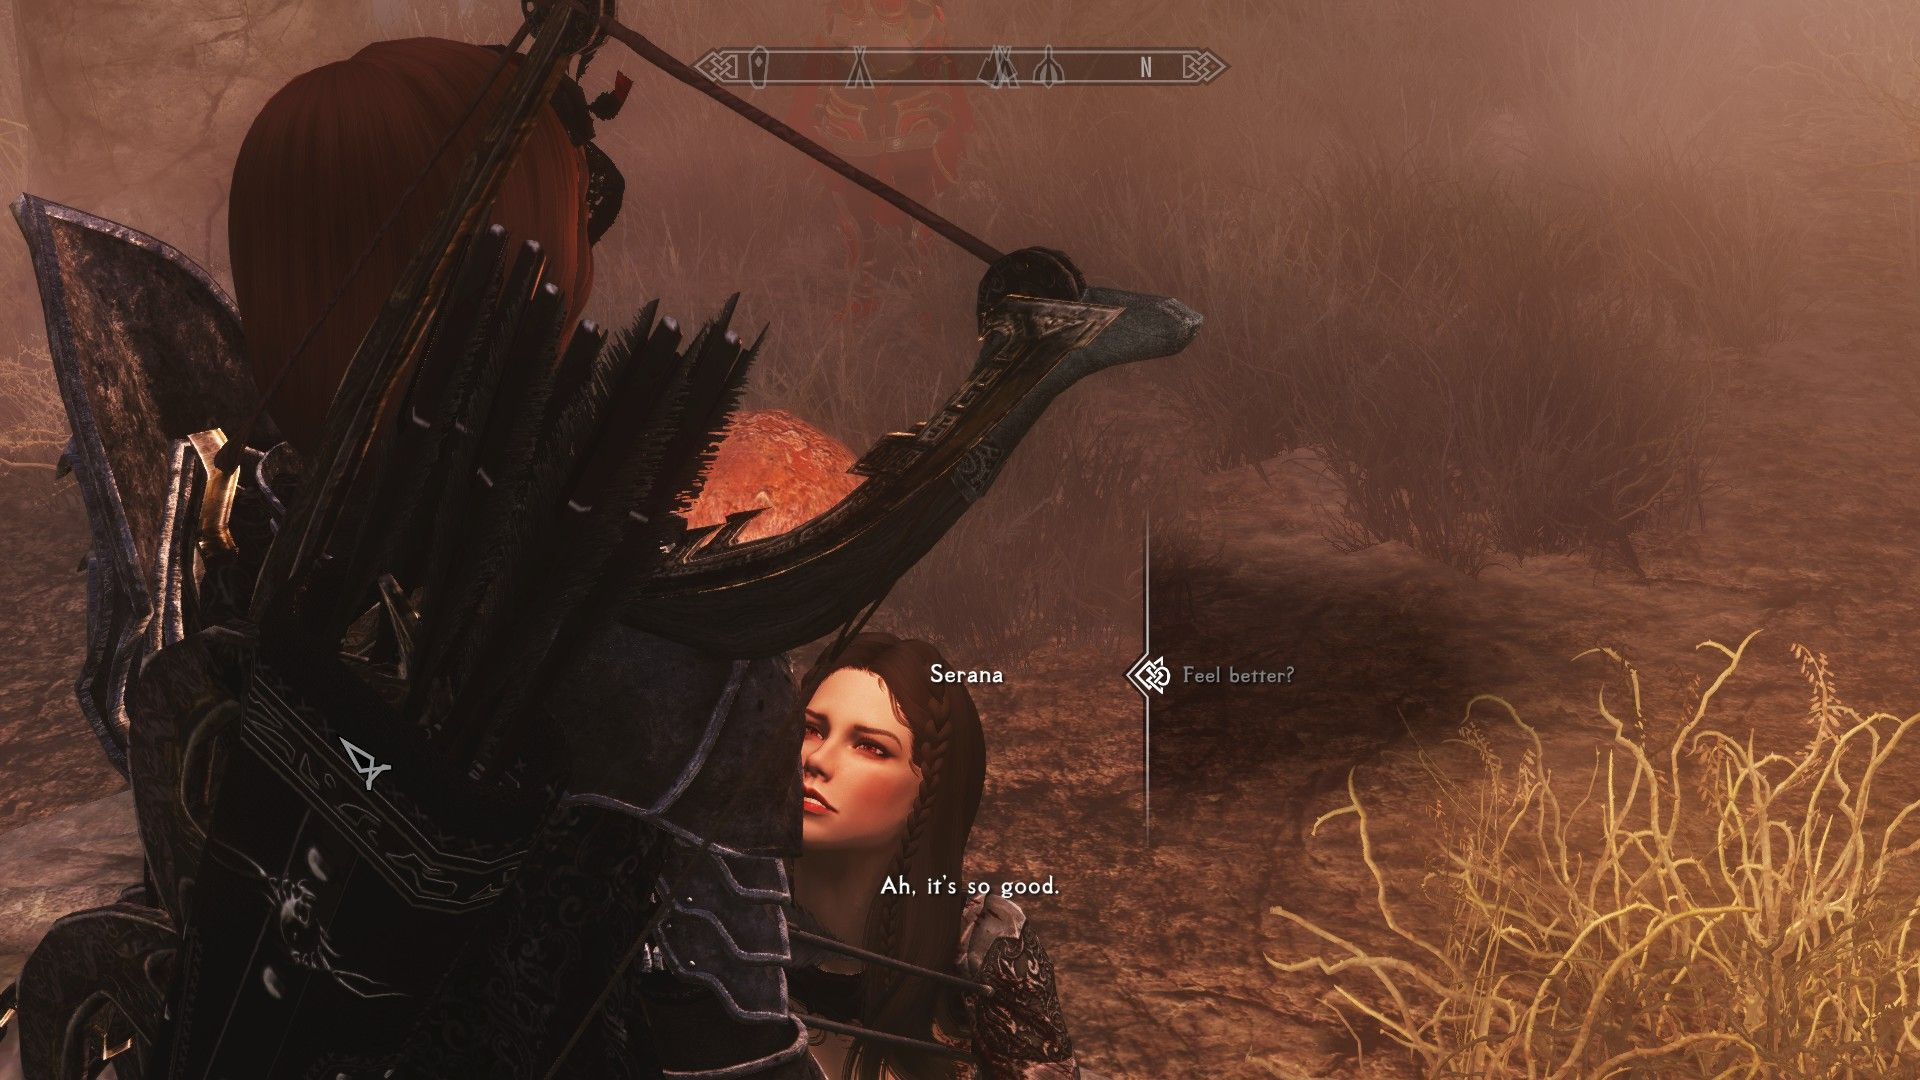 Serana stuck in sneak while doing Amorous Adventures #games